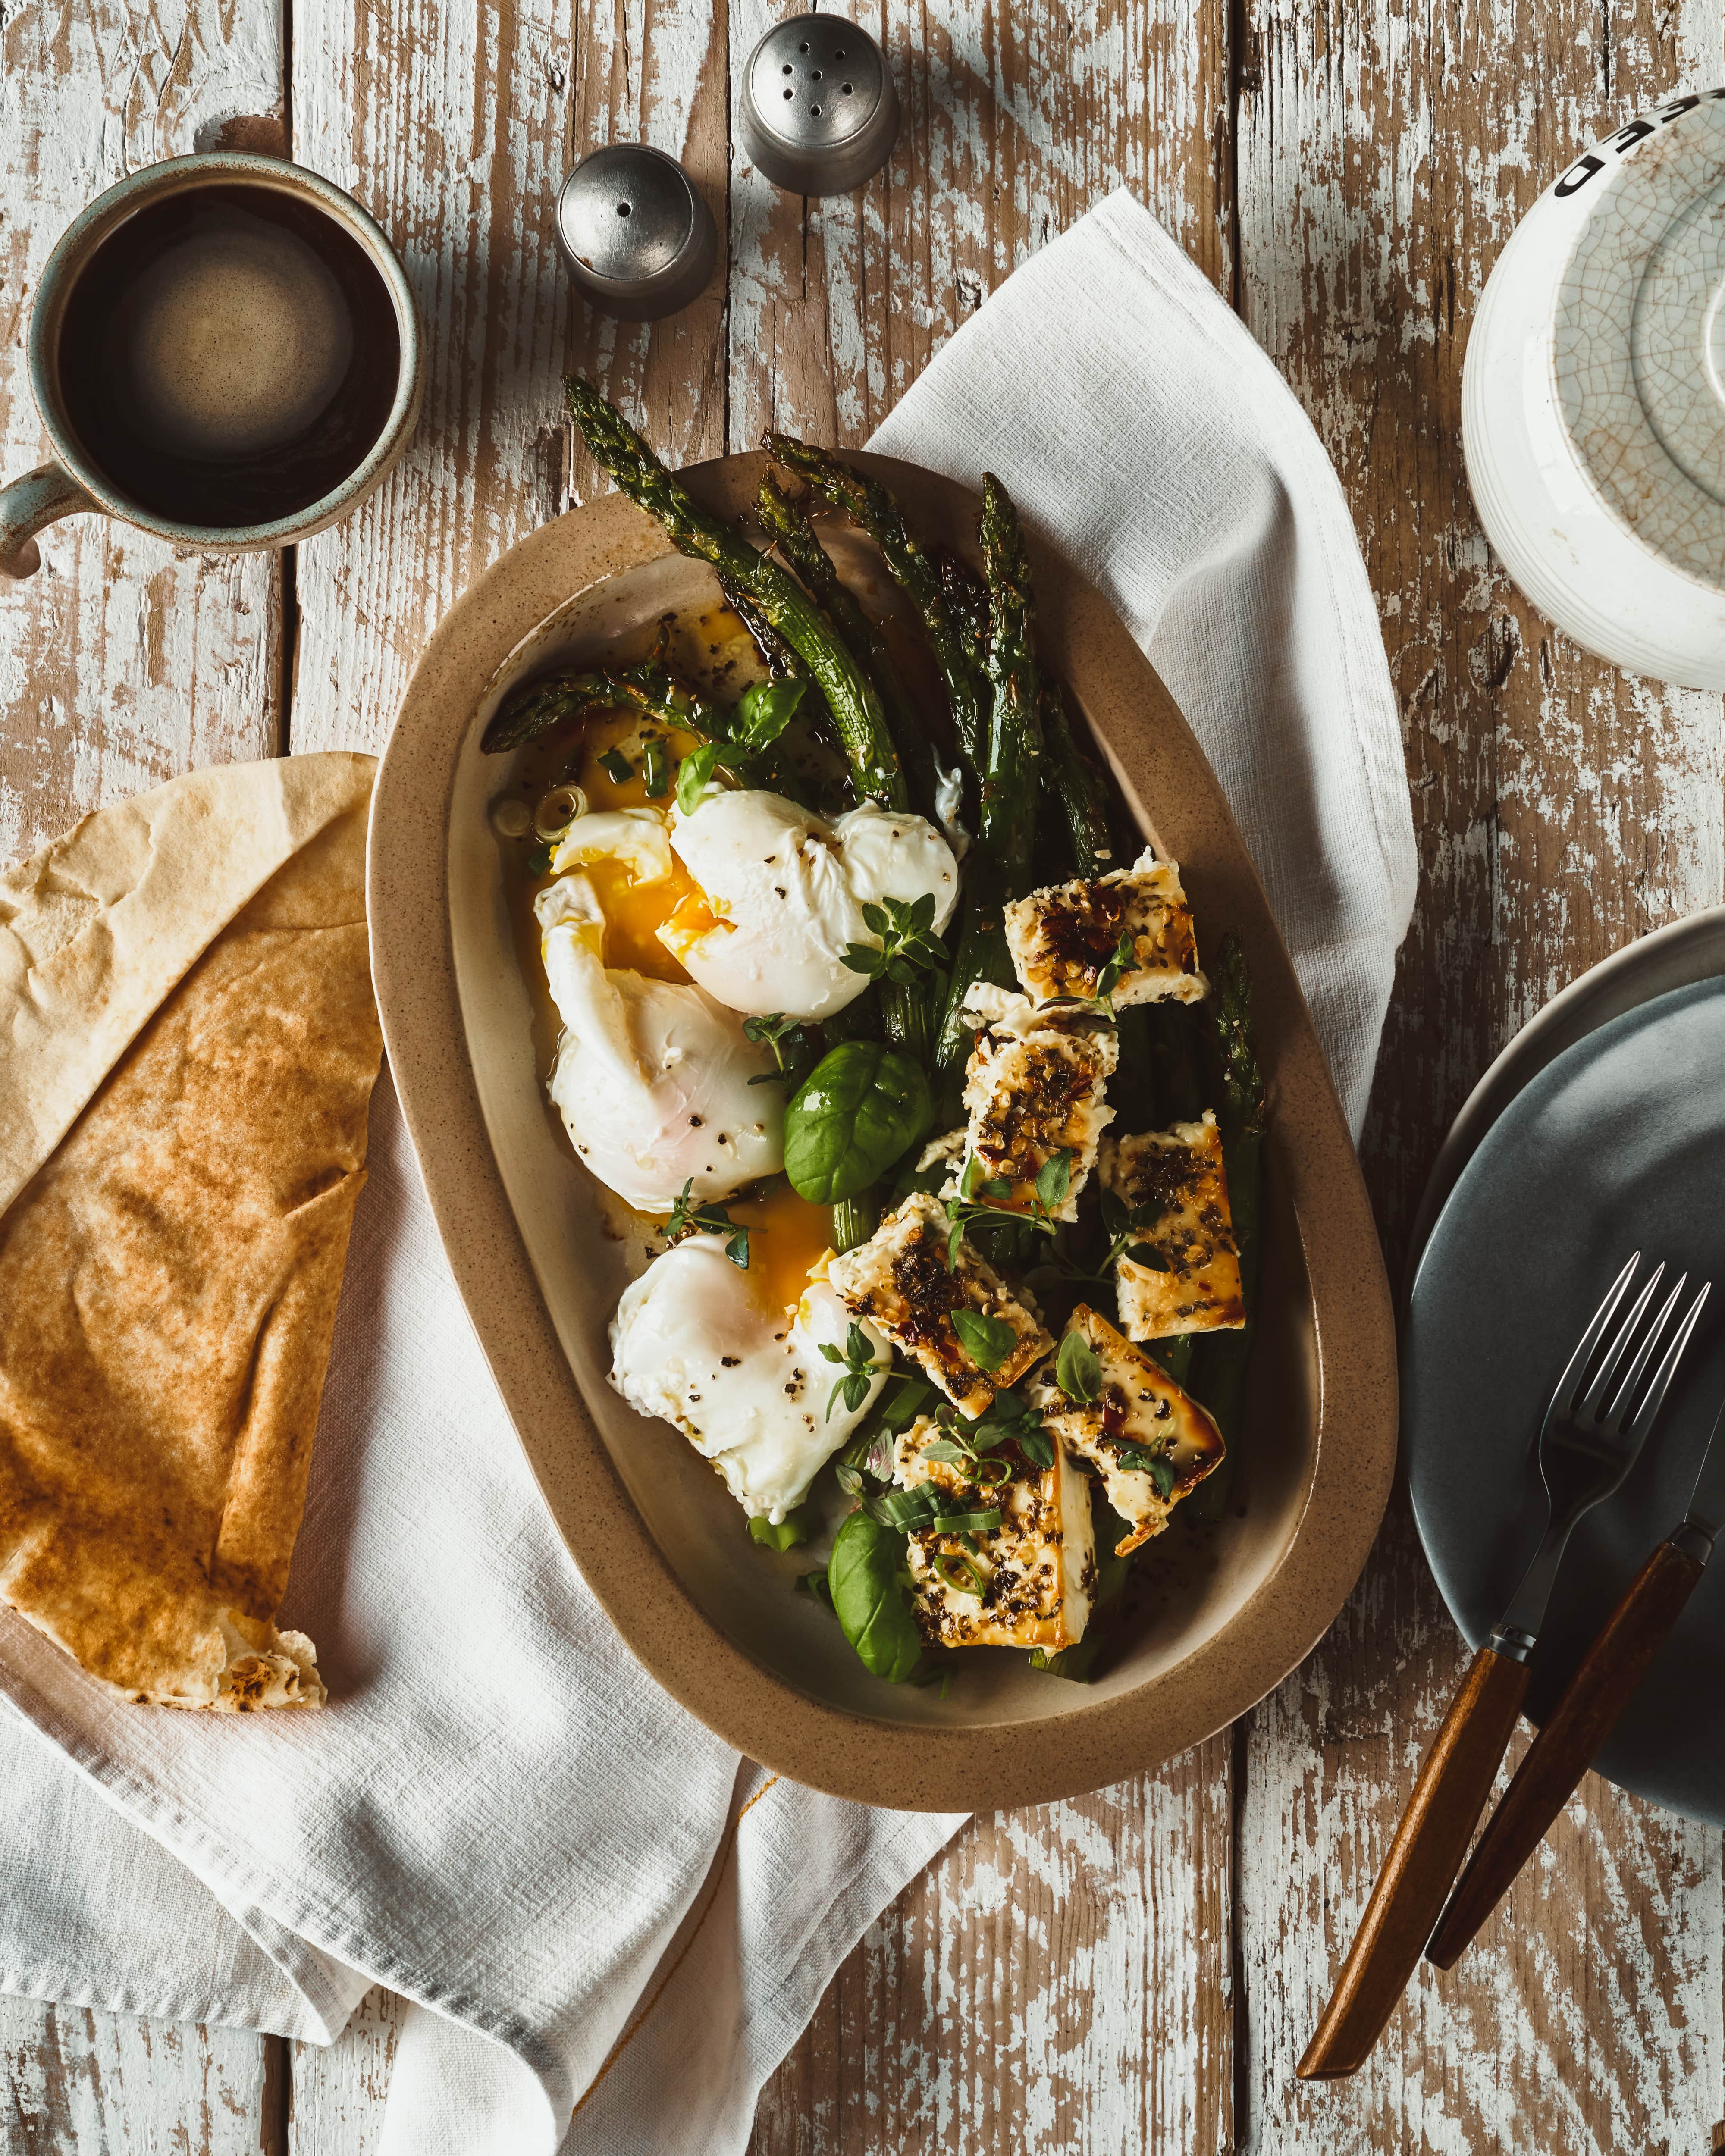 Asparagus & Baked Feta Salad With Poached Eggs